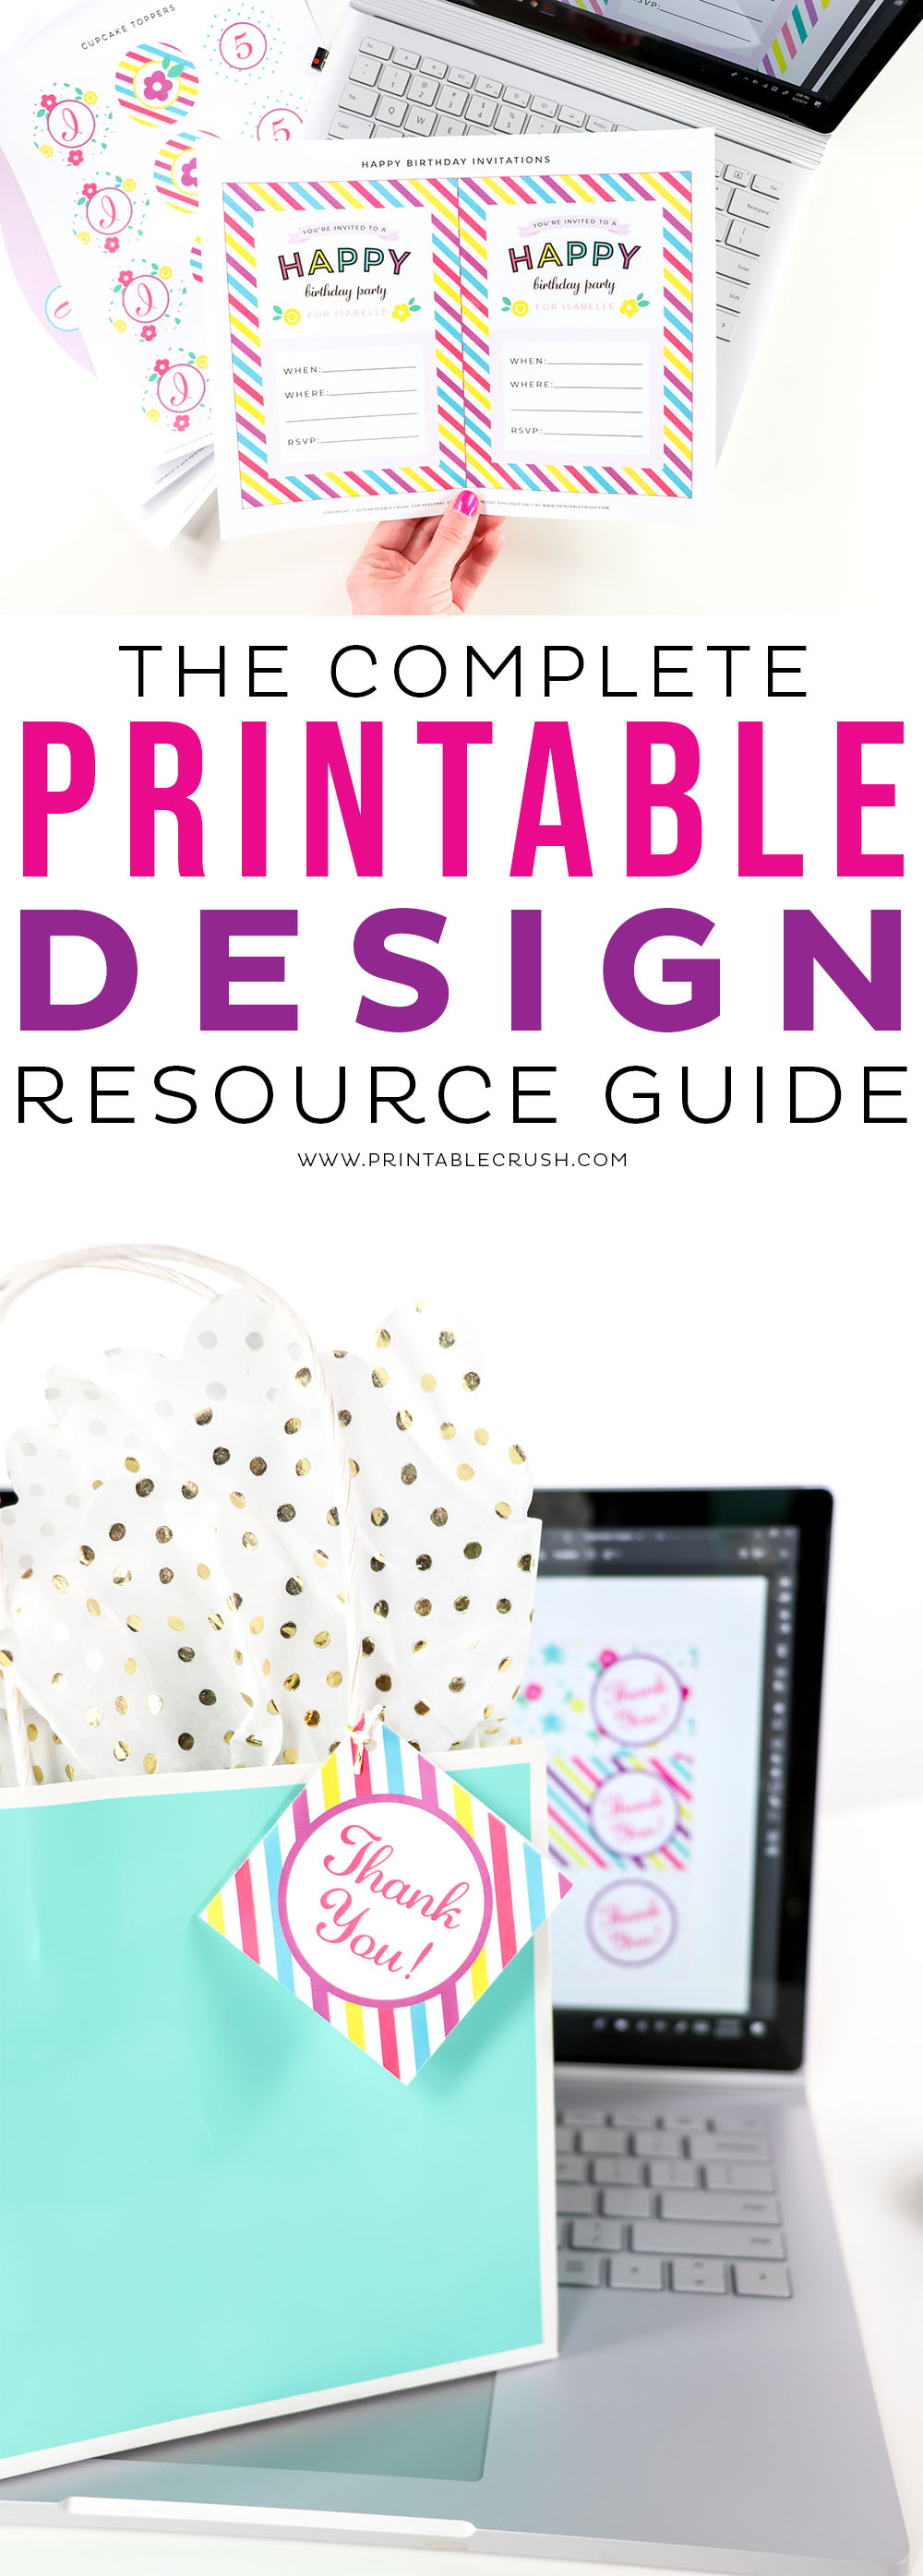 Intimidated by creating printables for your online business? Check out the Complete Printable Design Resource Guide for tips in starting your digital store!